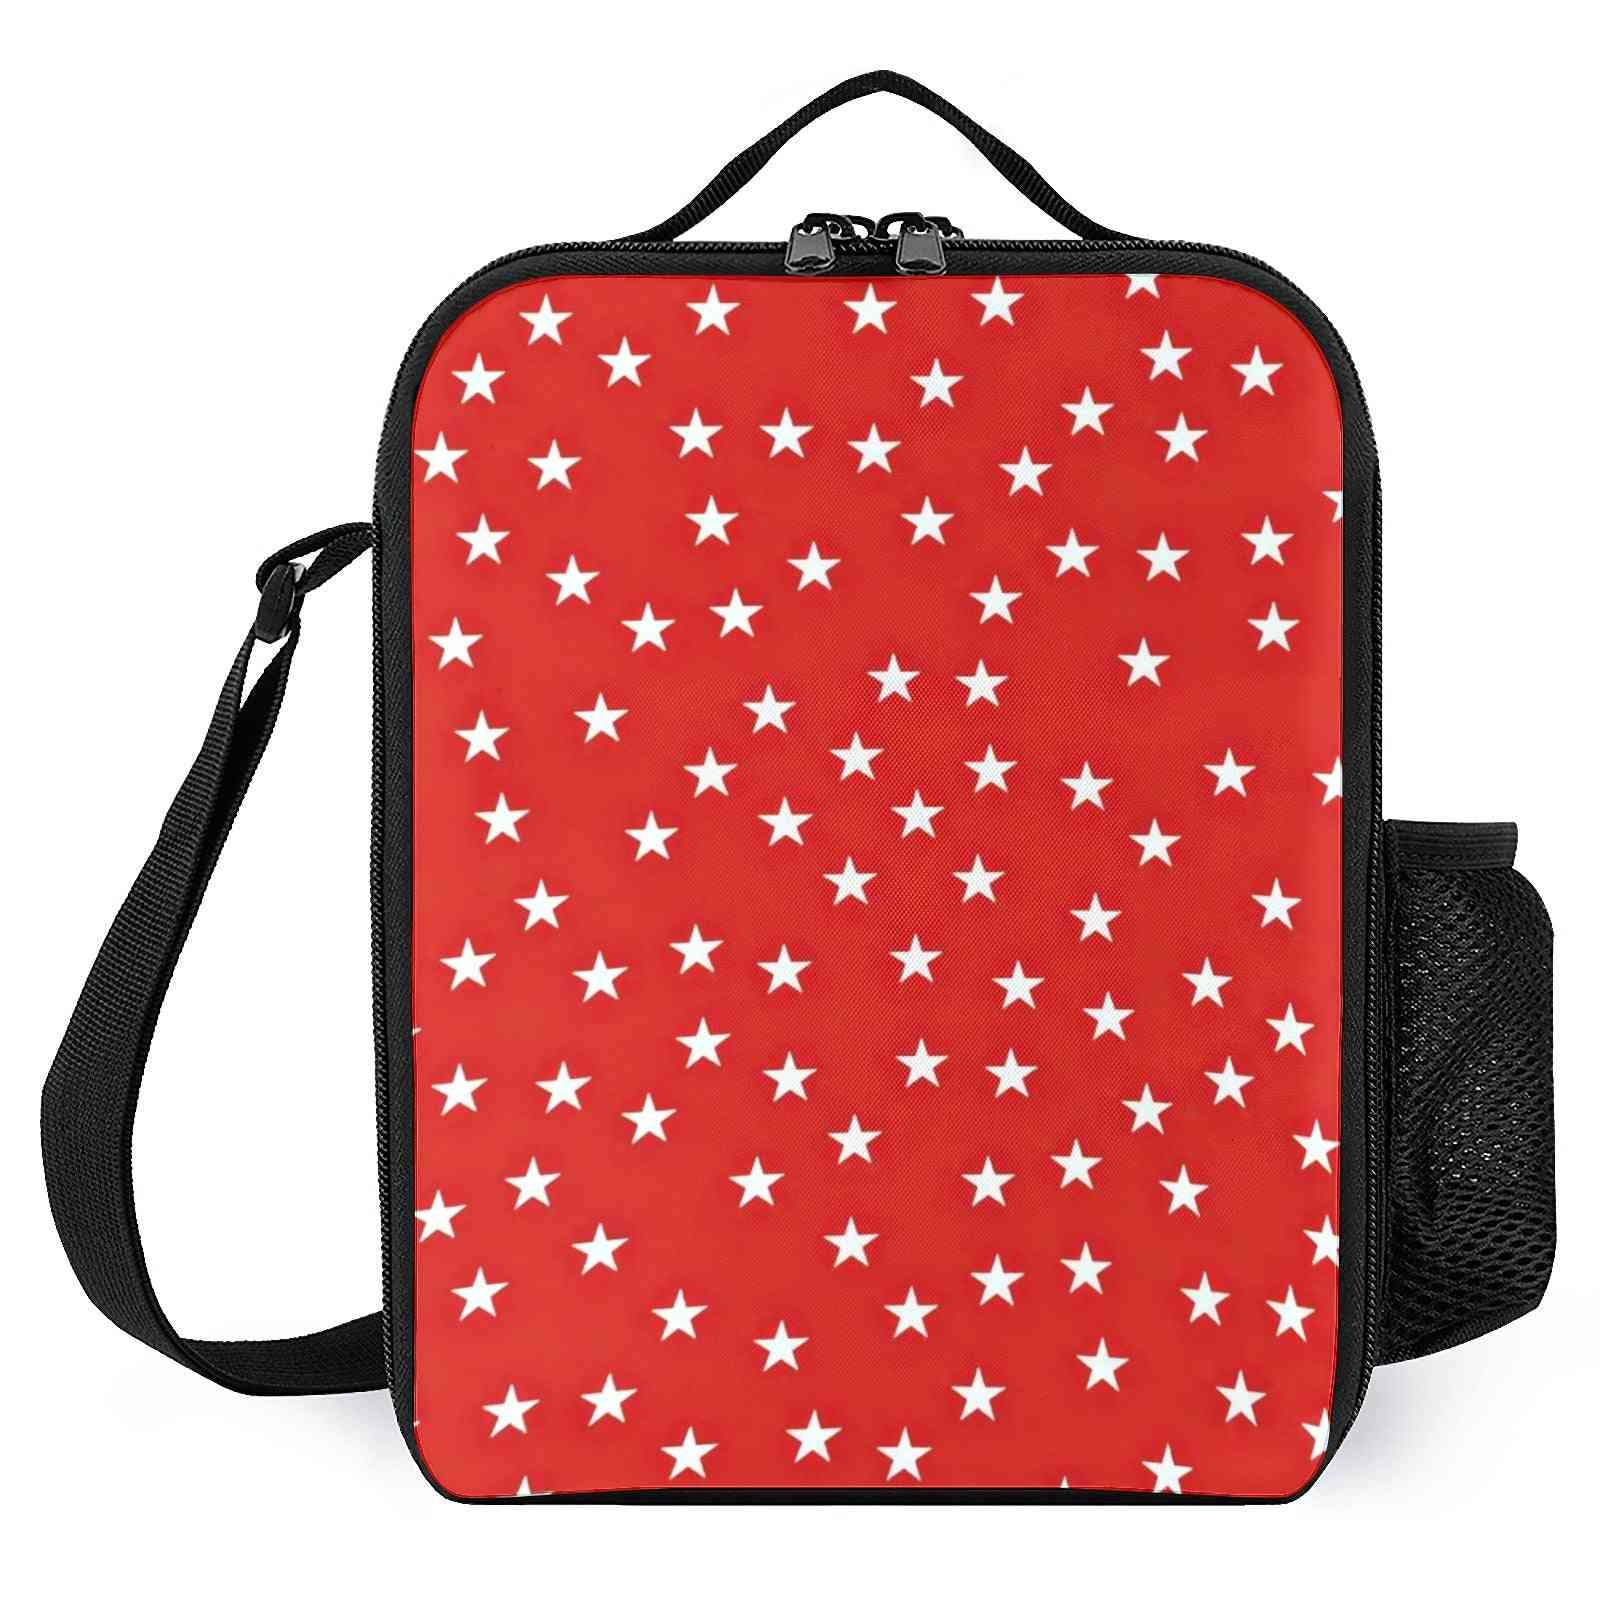 Seamless Star Pattern Printed Lunch Bags